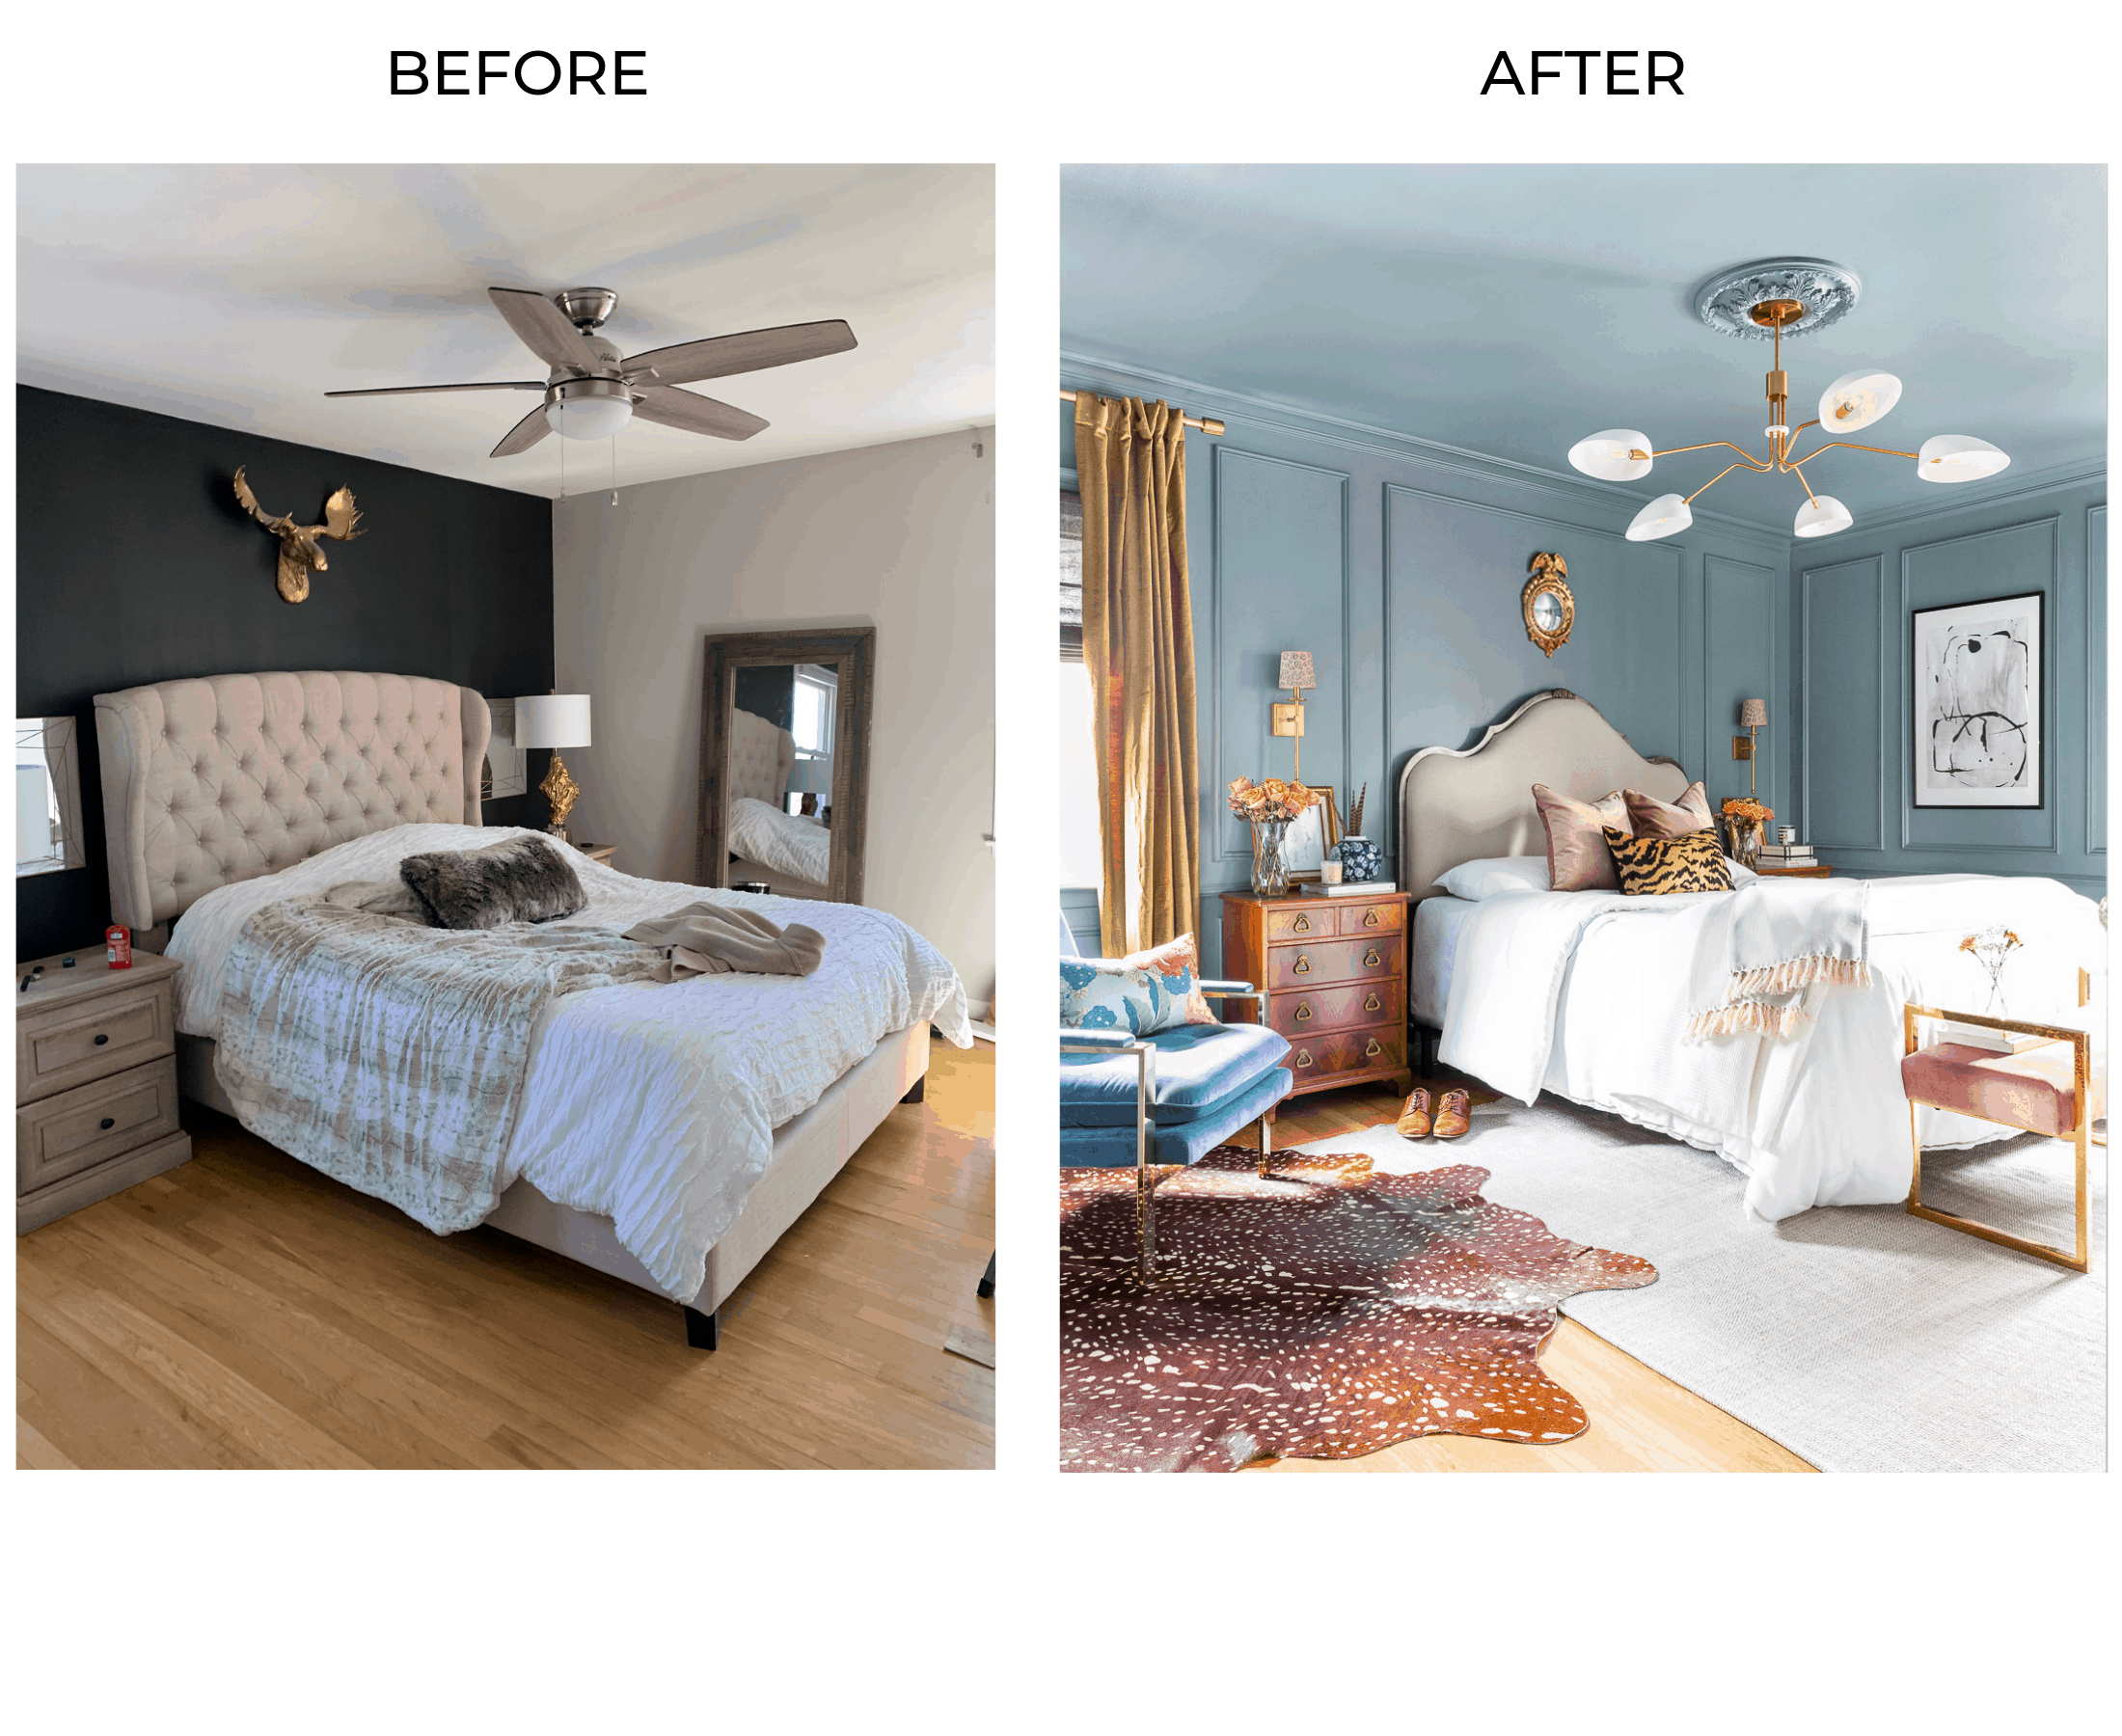 bedroom-before-after-makeover